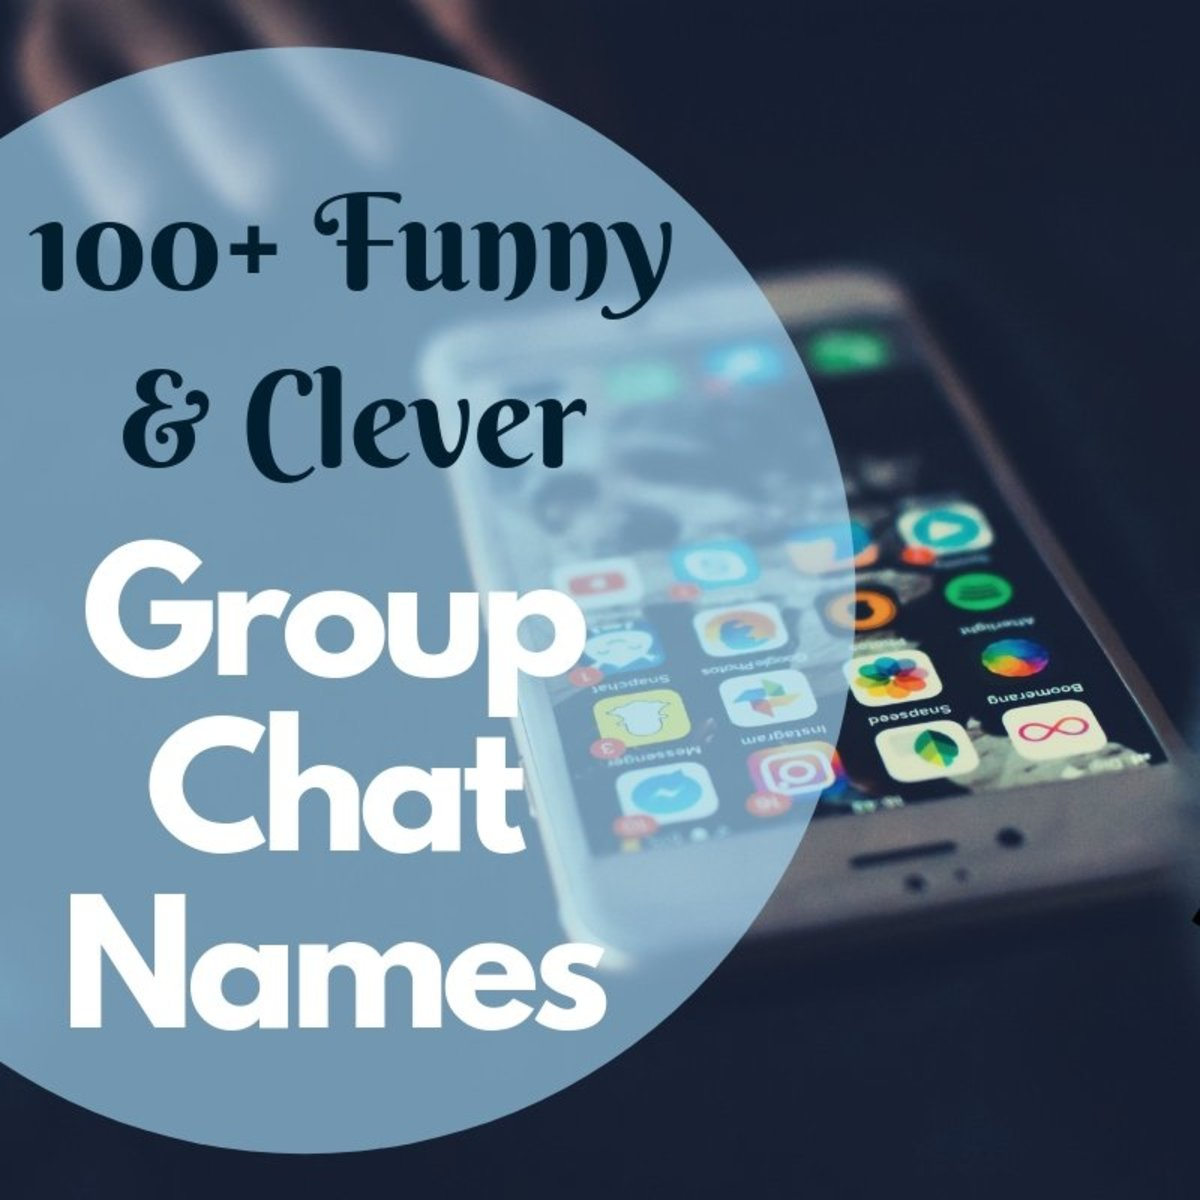 100+ Funny and Clever Group Chat Names You've Never Heard Of